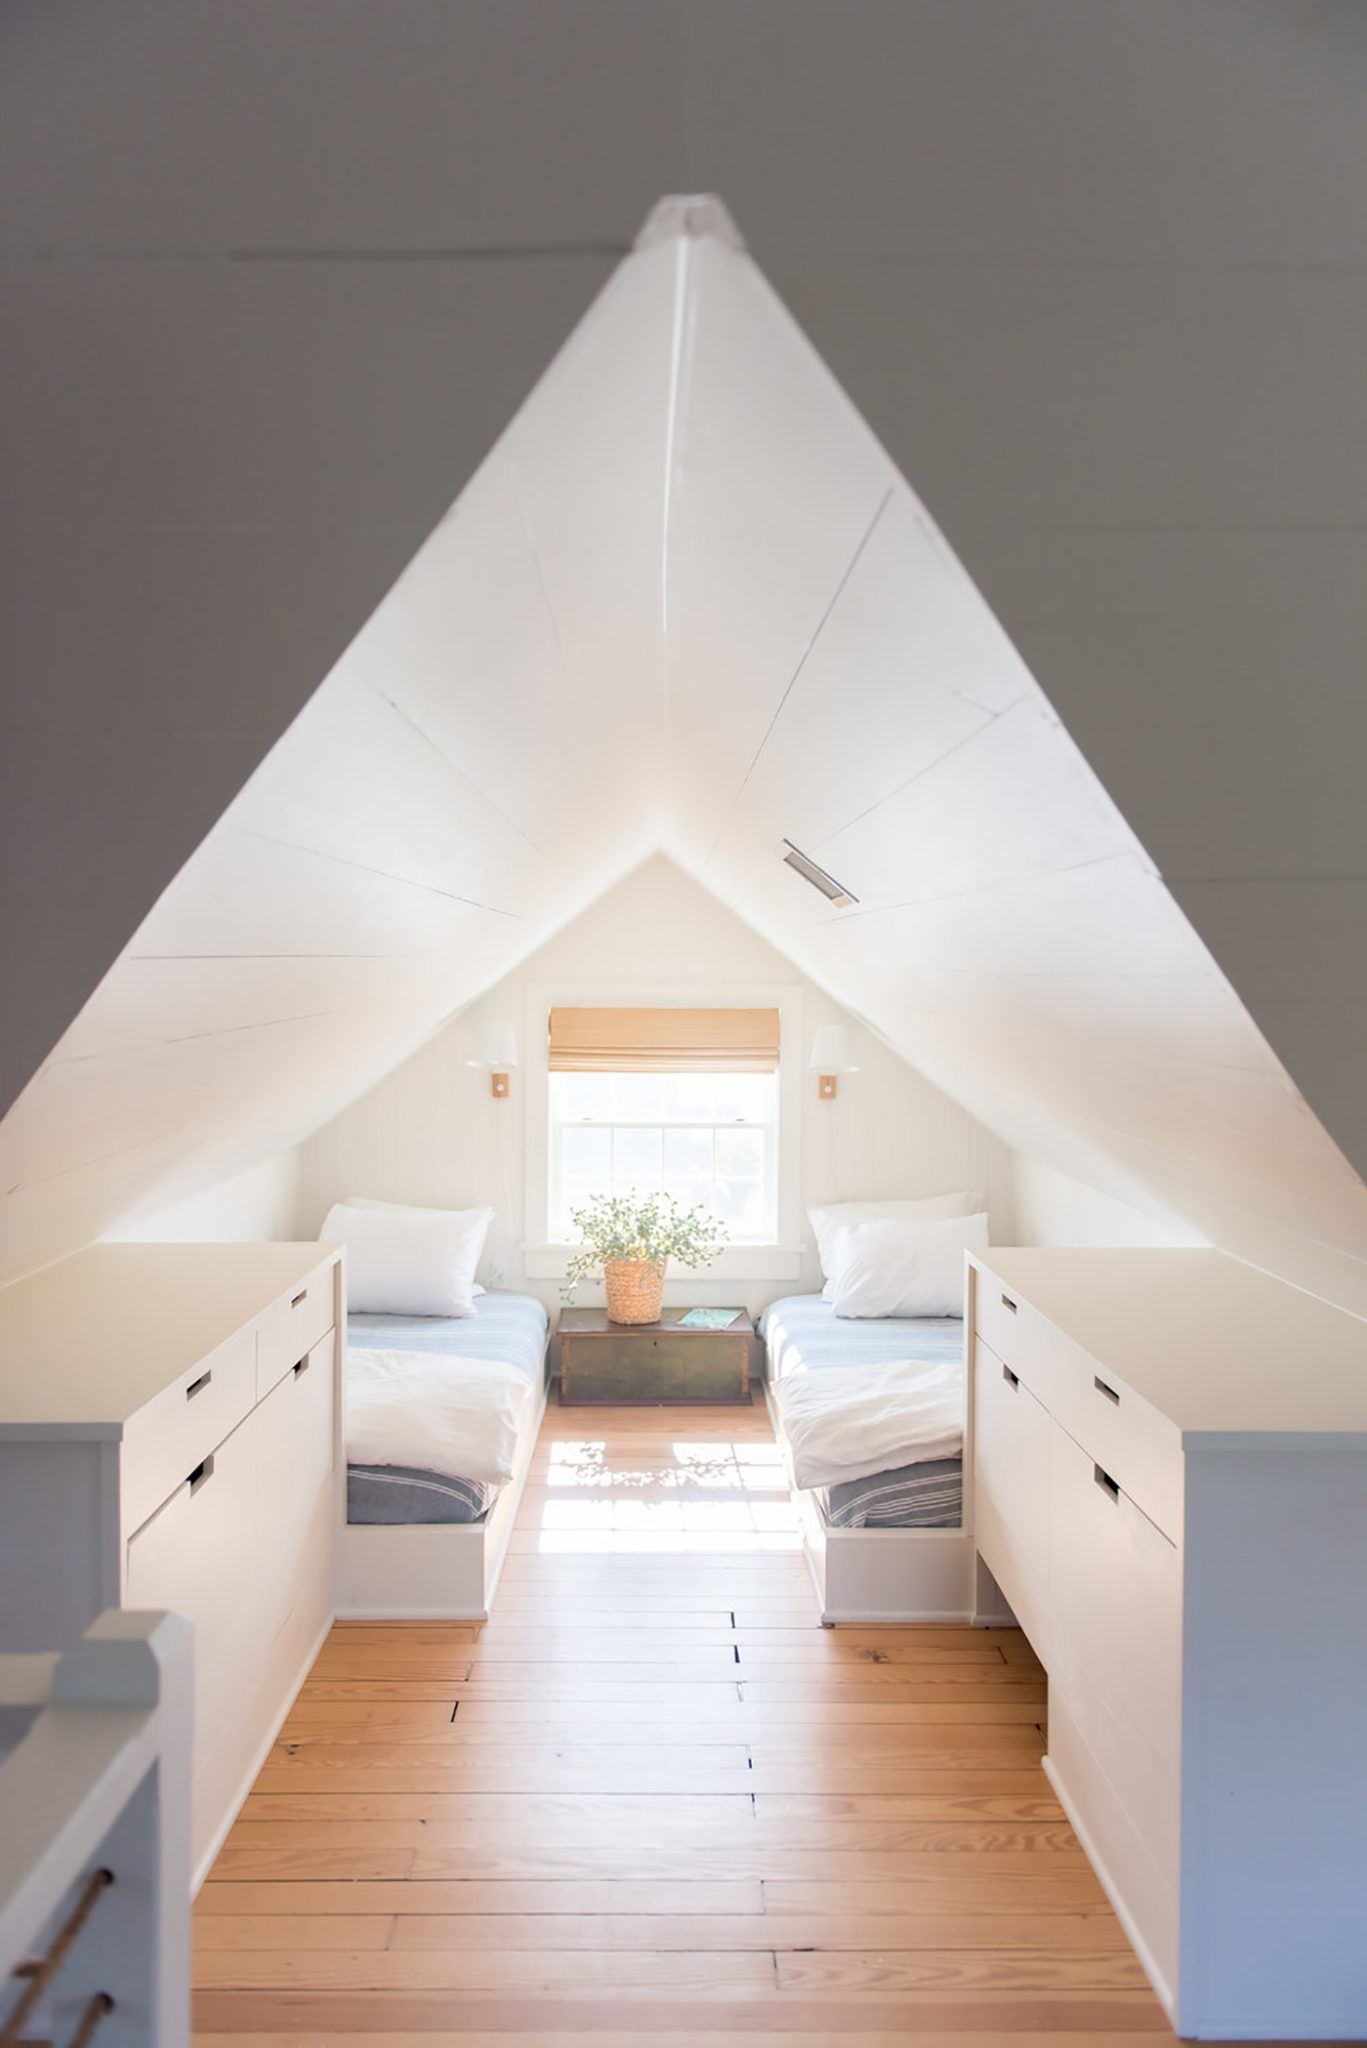 Mosle - Attic guest beds / kids room by Hannah Childs Interior Design